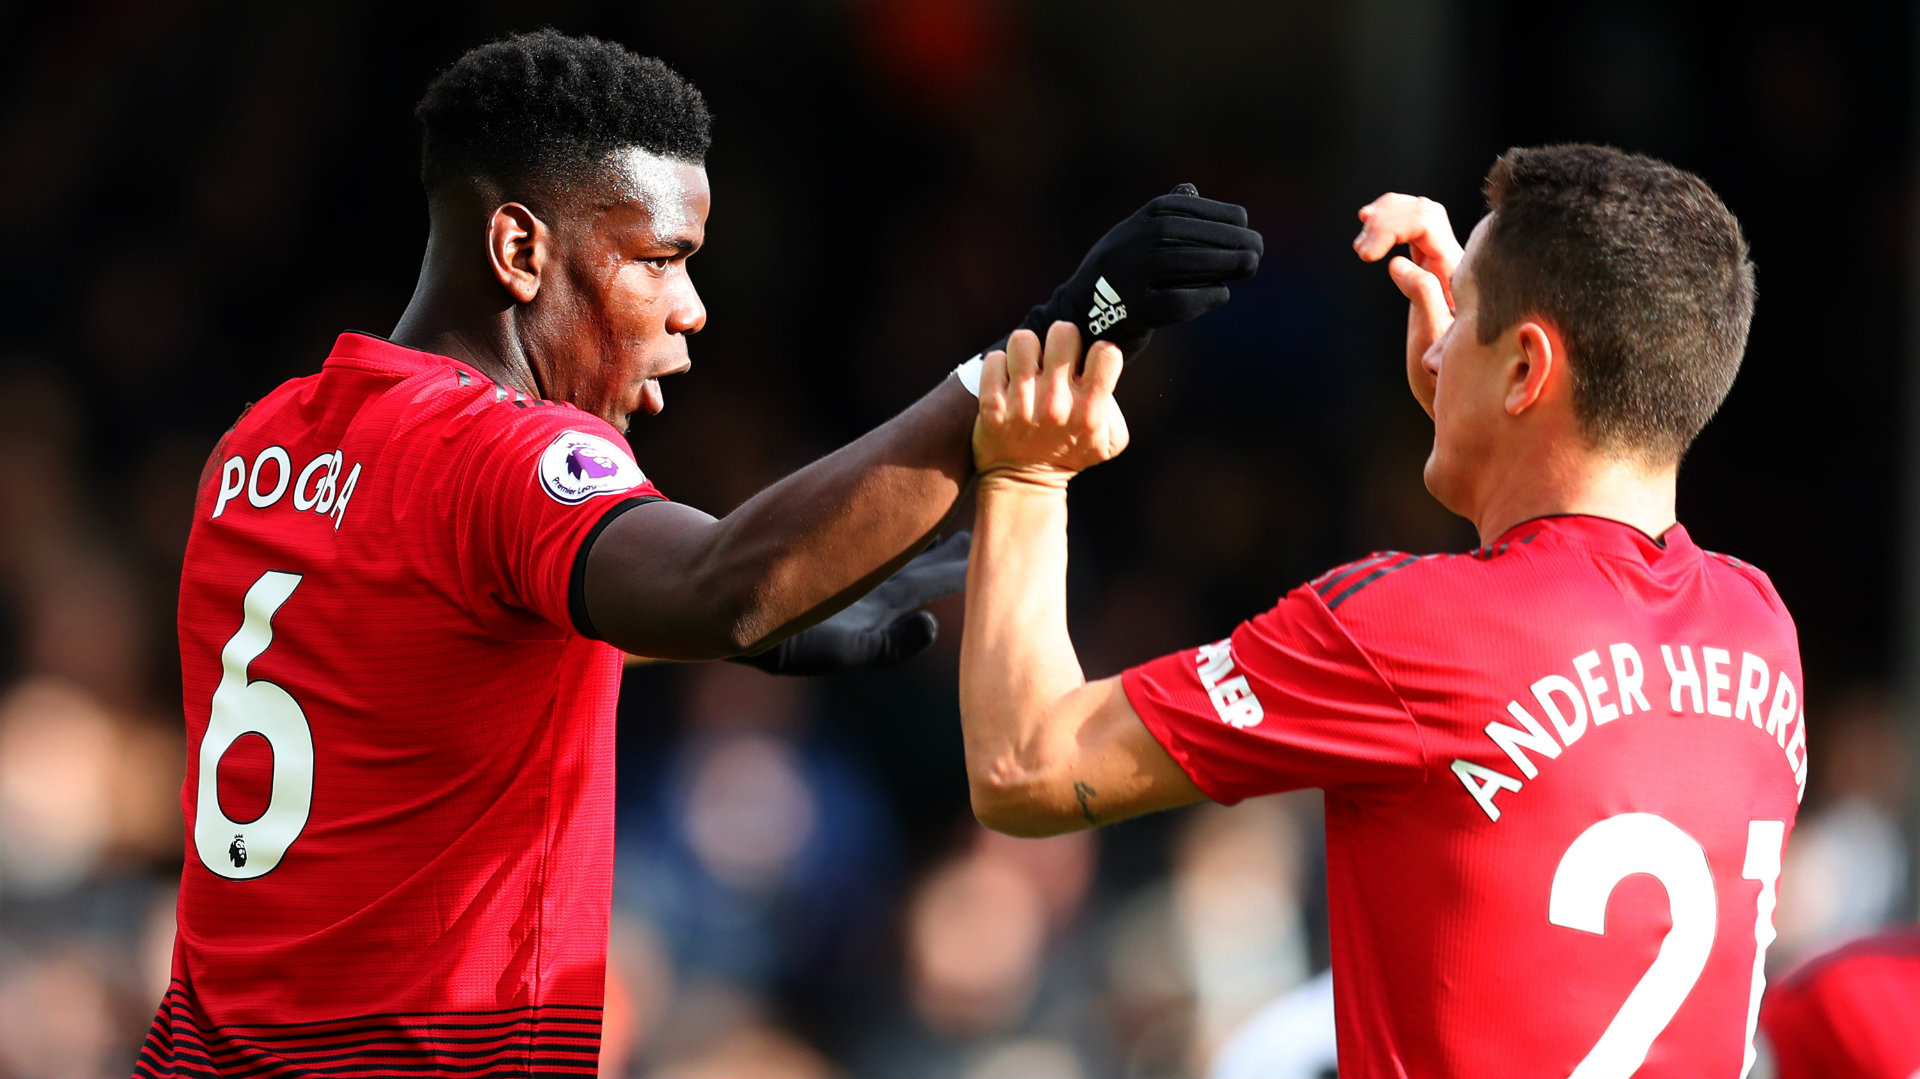 'When Pogba was good, he was really good' - Ex-Man Utd ace Herrera says Frenchman was 'a pleasure to play with'